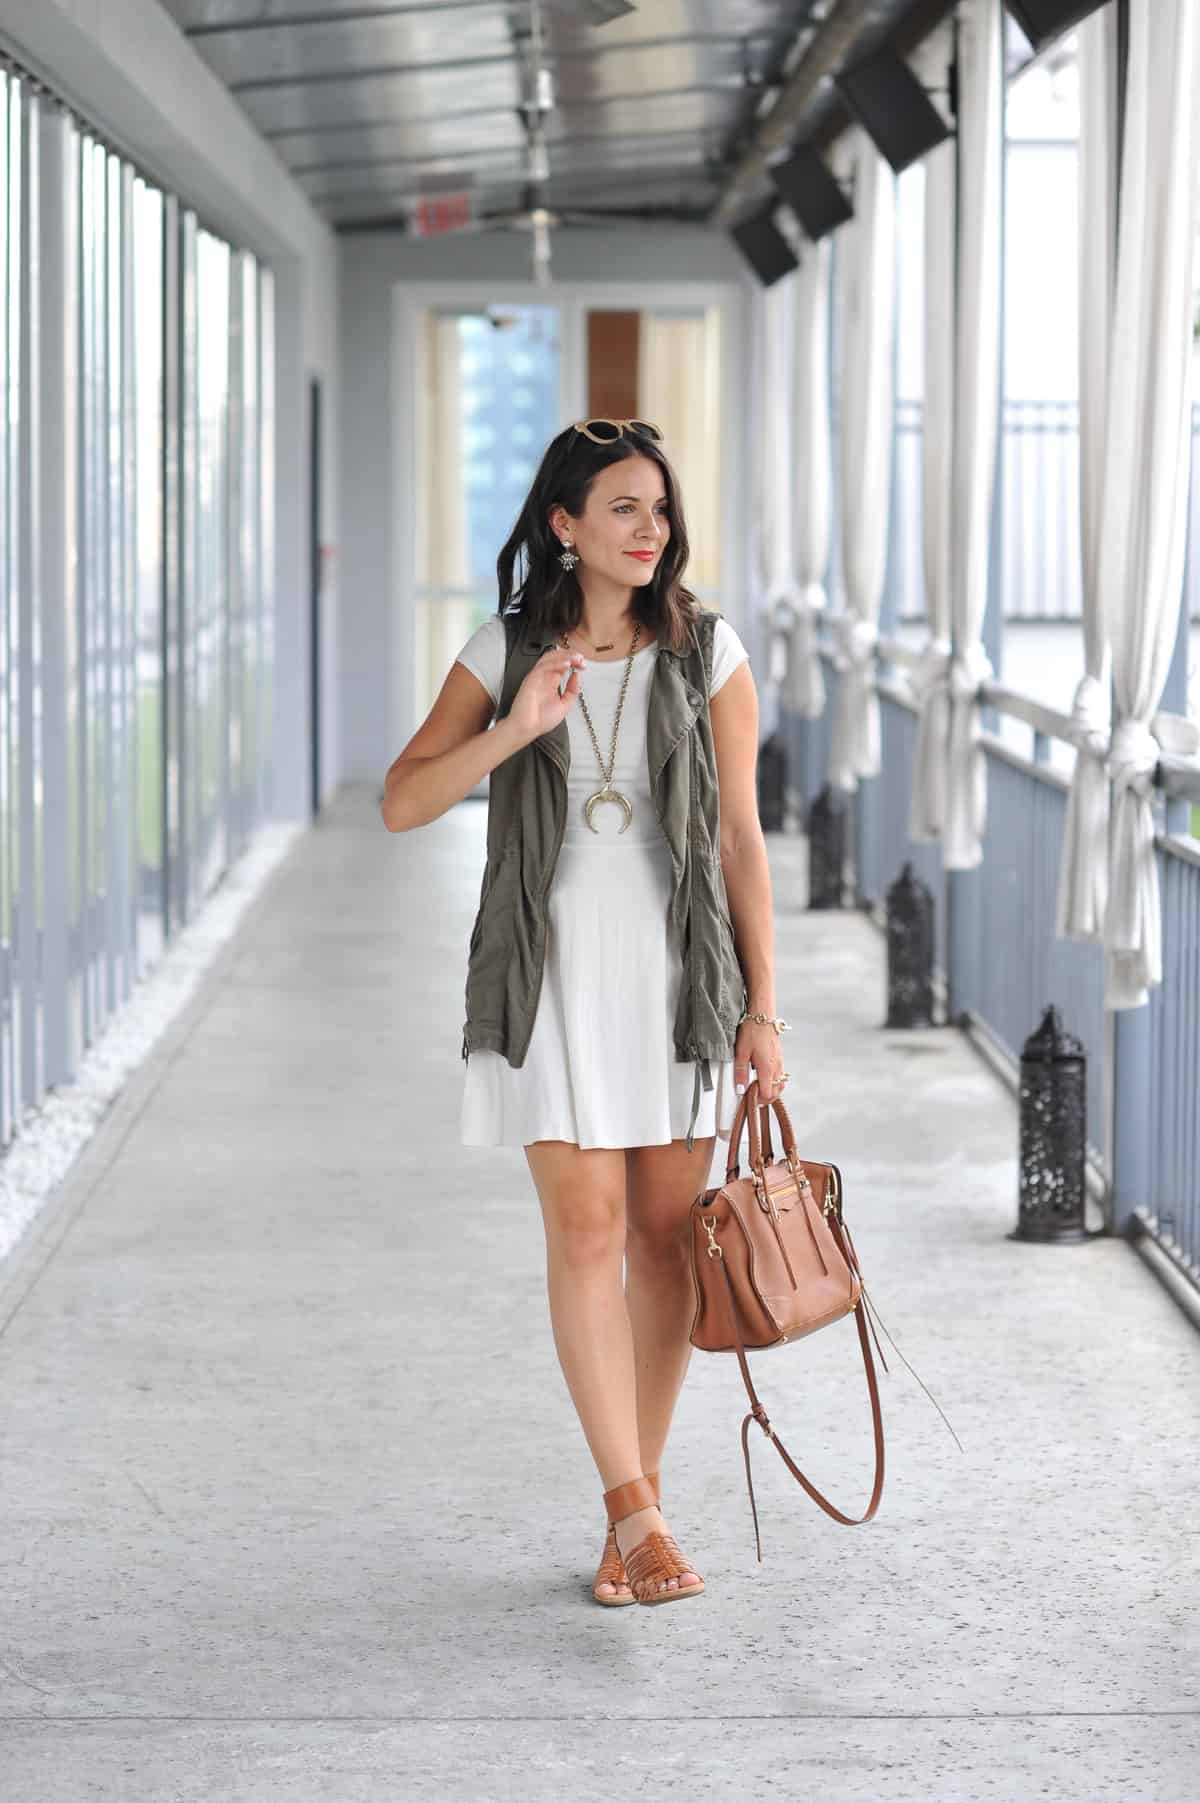 how to style a vest for summer - My Style Vita @mystylevita - 7